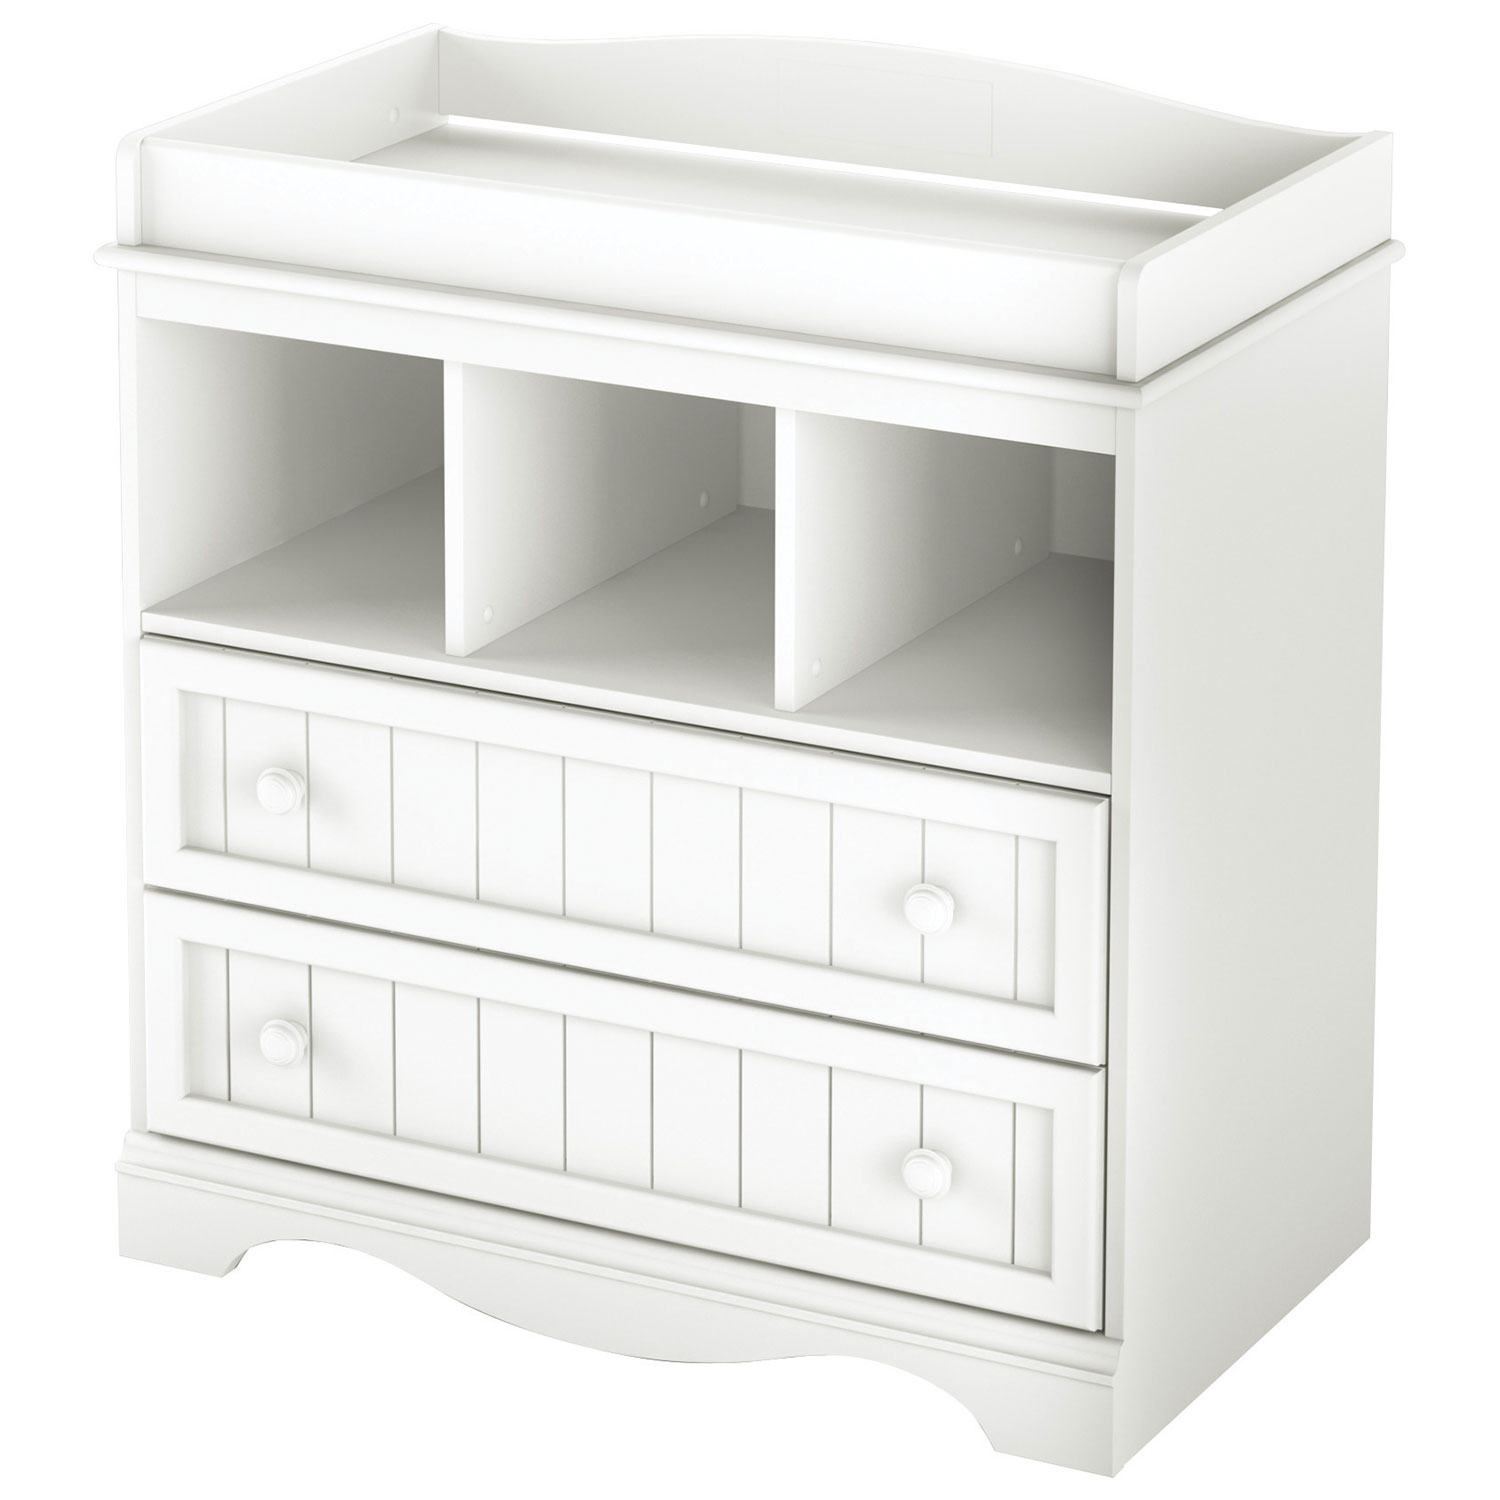 Merveilleux South Shore Savannah Changing Table   Pure White : Change Tables   Best Buy  Canada